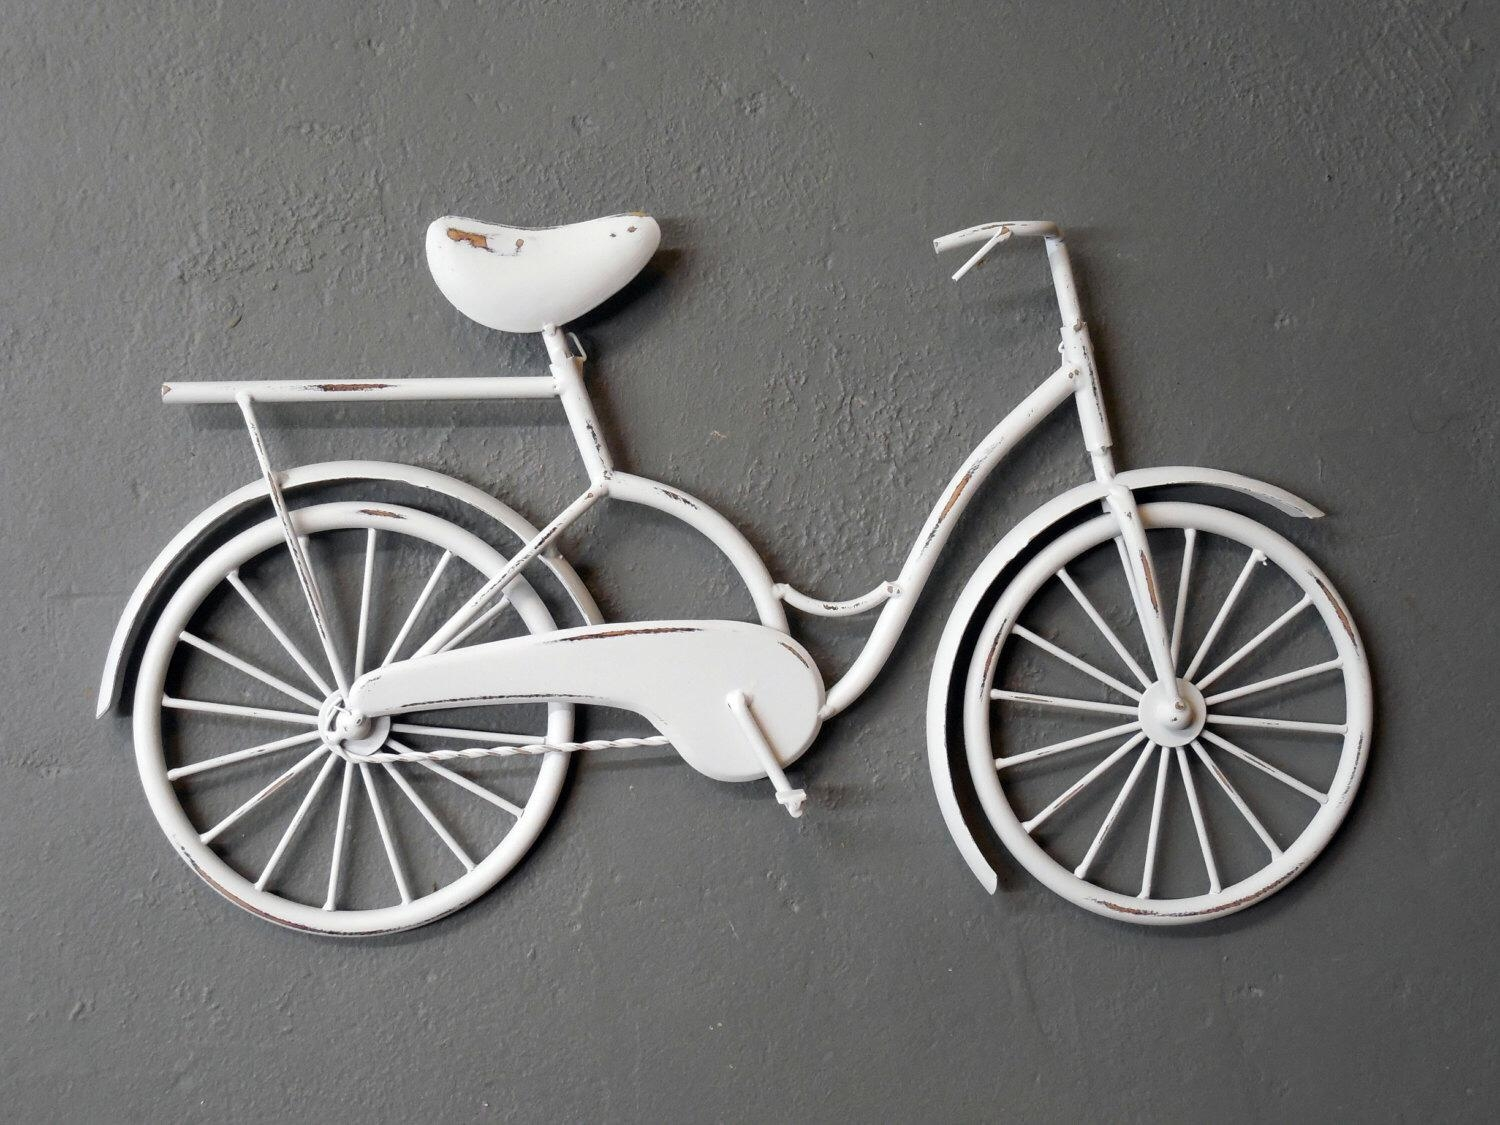 Superb Red Metal Bicycle Wall Art Bike Wheel Furniture For For Bicycle Metal Wall Art (View 8 of 20)